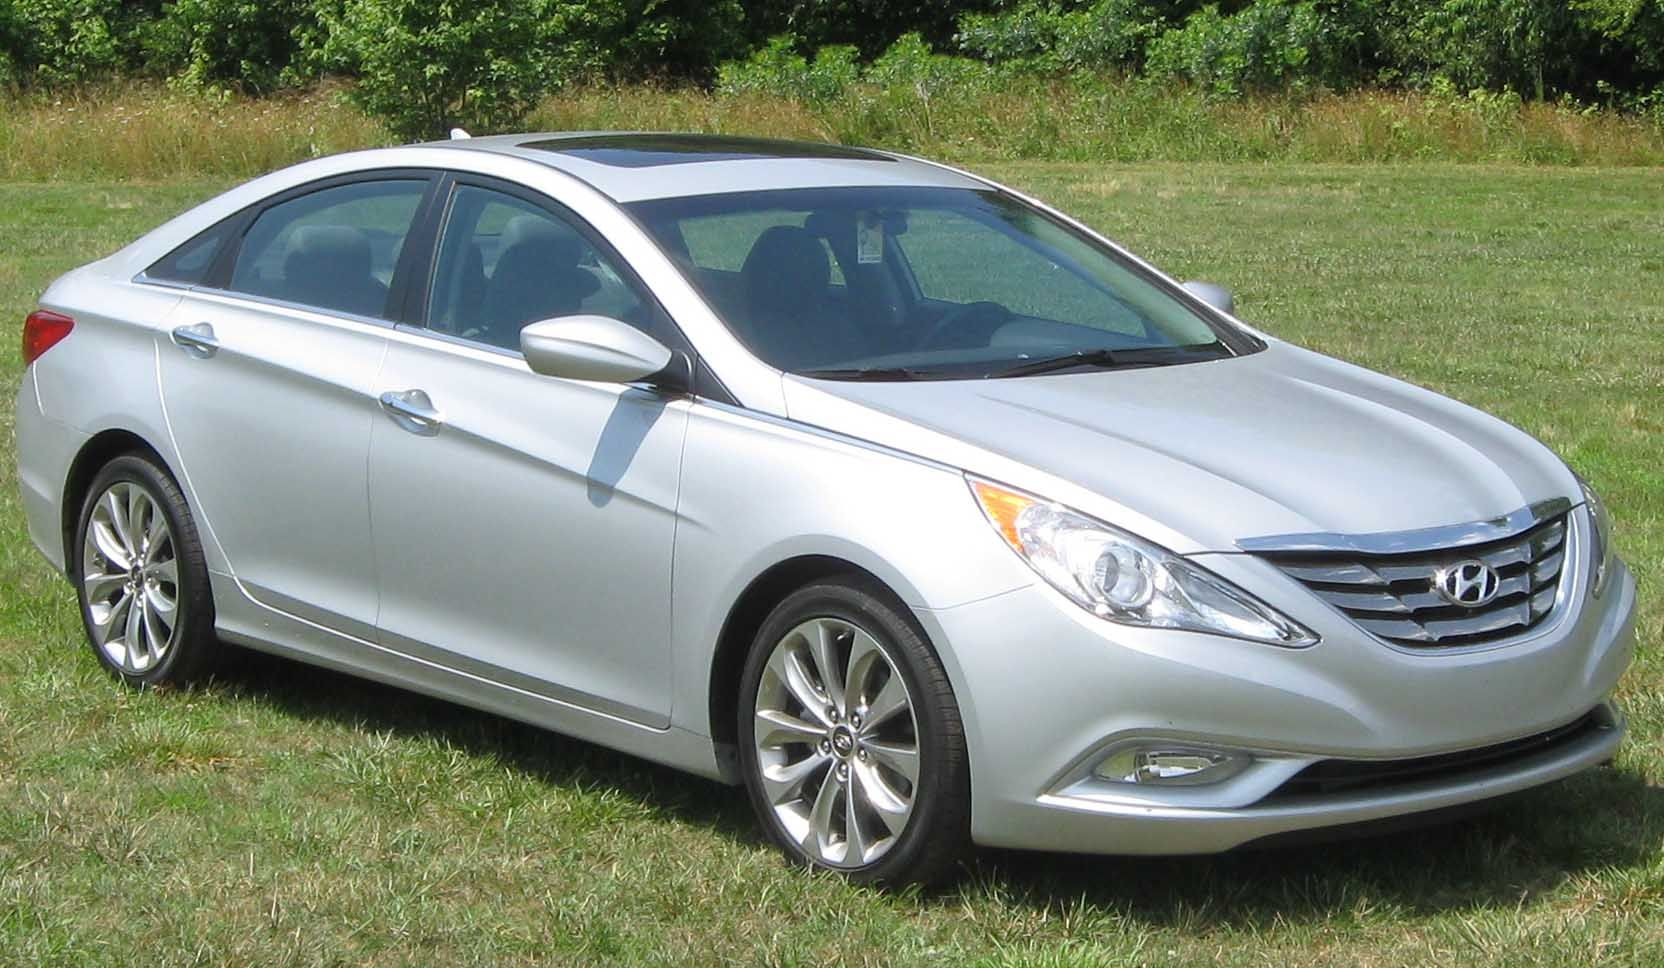 That is why 2016 Hyundai Sonata goes hybrid, so electrical engine could make nearly no noise. Also, plug-in variation is to be had to exchange present 2016 Hyundai Sonata in few US international locations with strict rules for emissions.